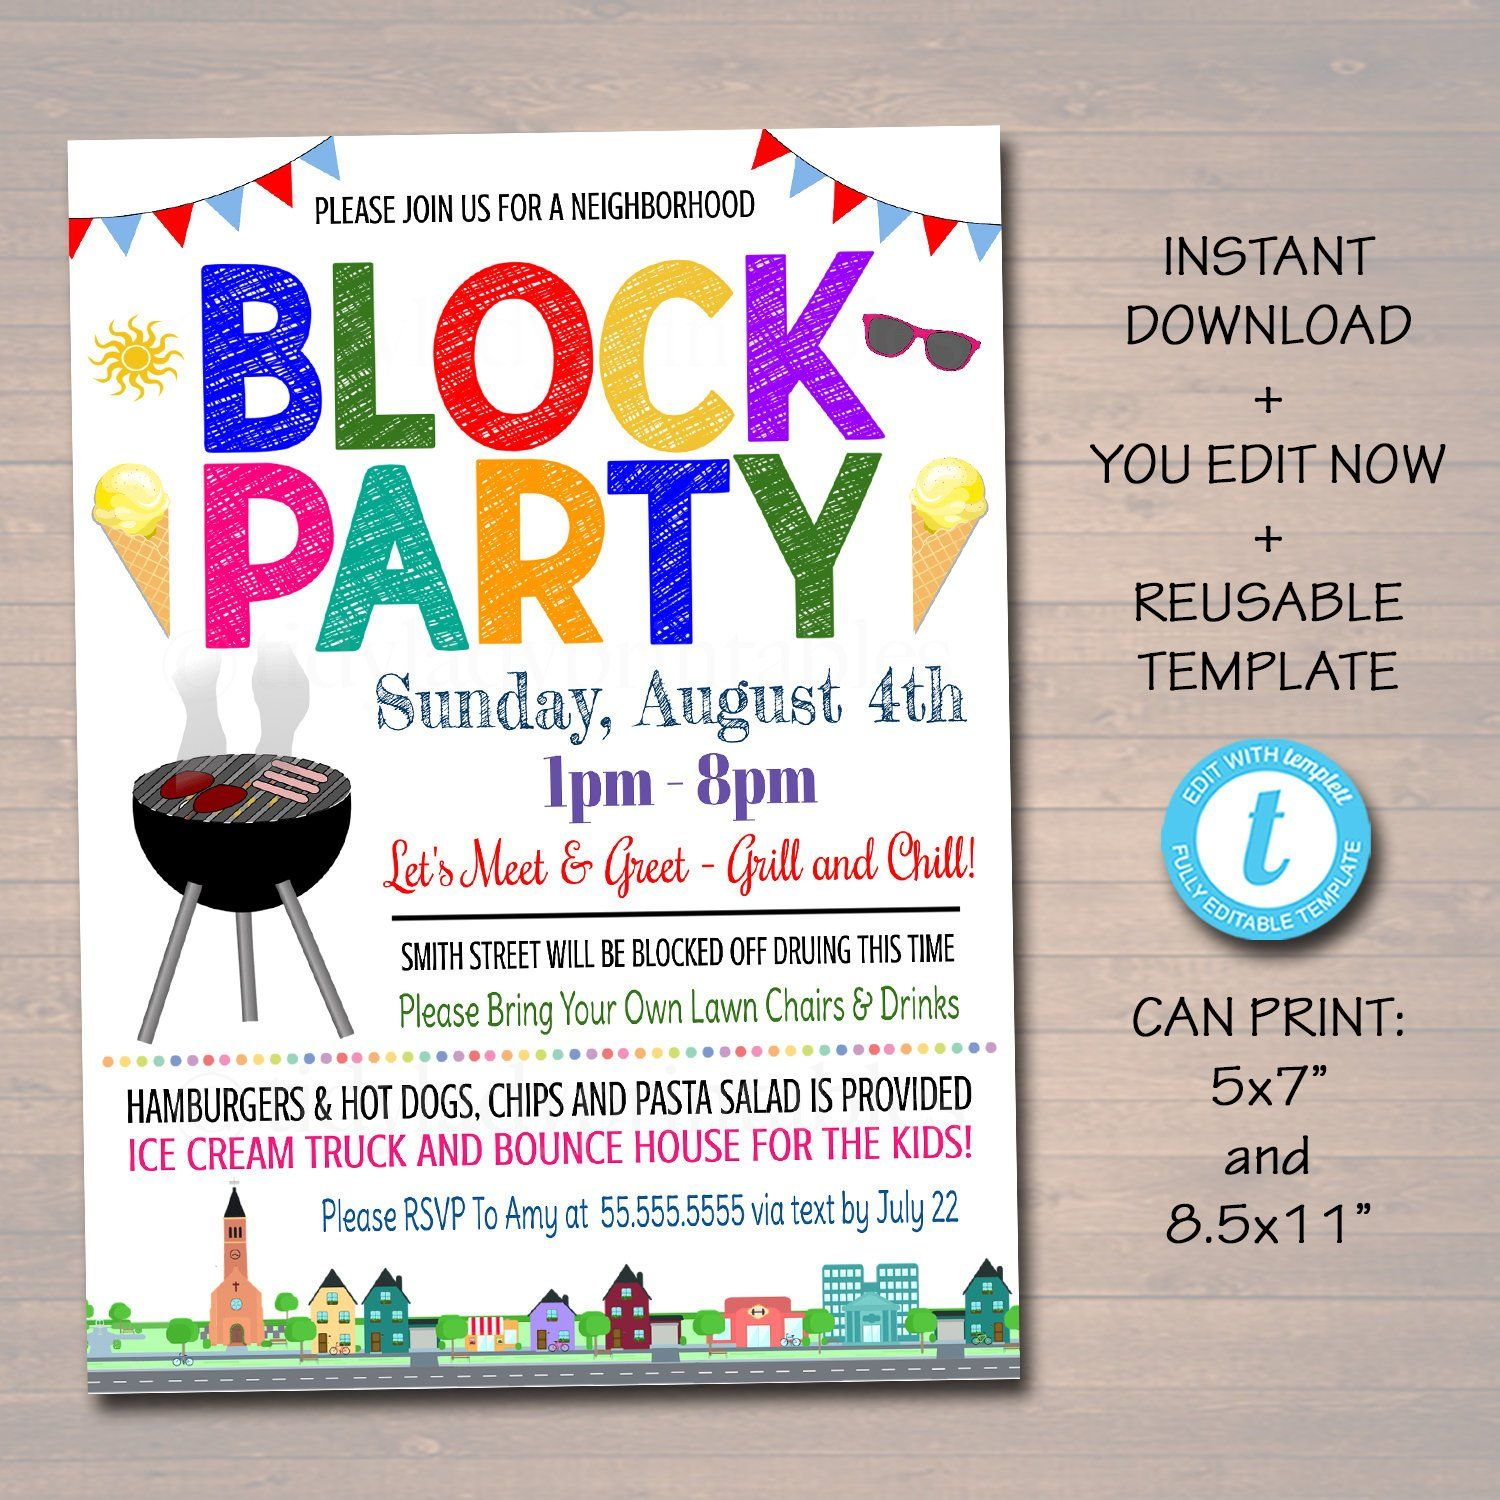 Neighborhood Block Party Invite Printable Invitation Bbq Picnic Summer Party Announcement Card Flyer In 2021 Party Invite Template Neighborhood Block Party Block Party Invitations